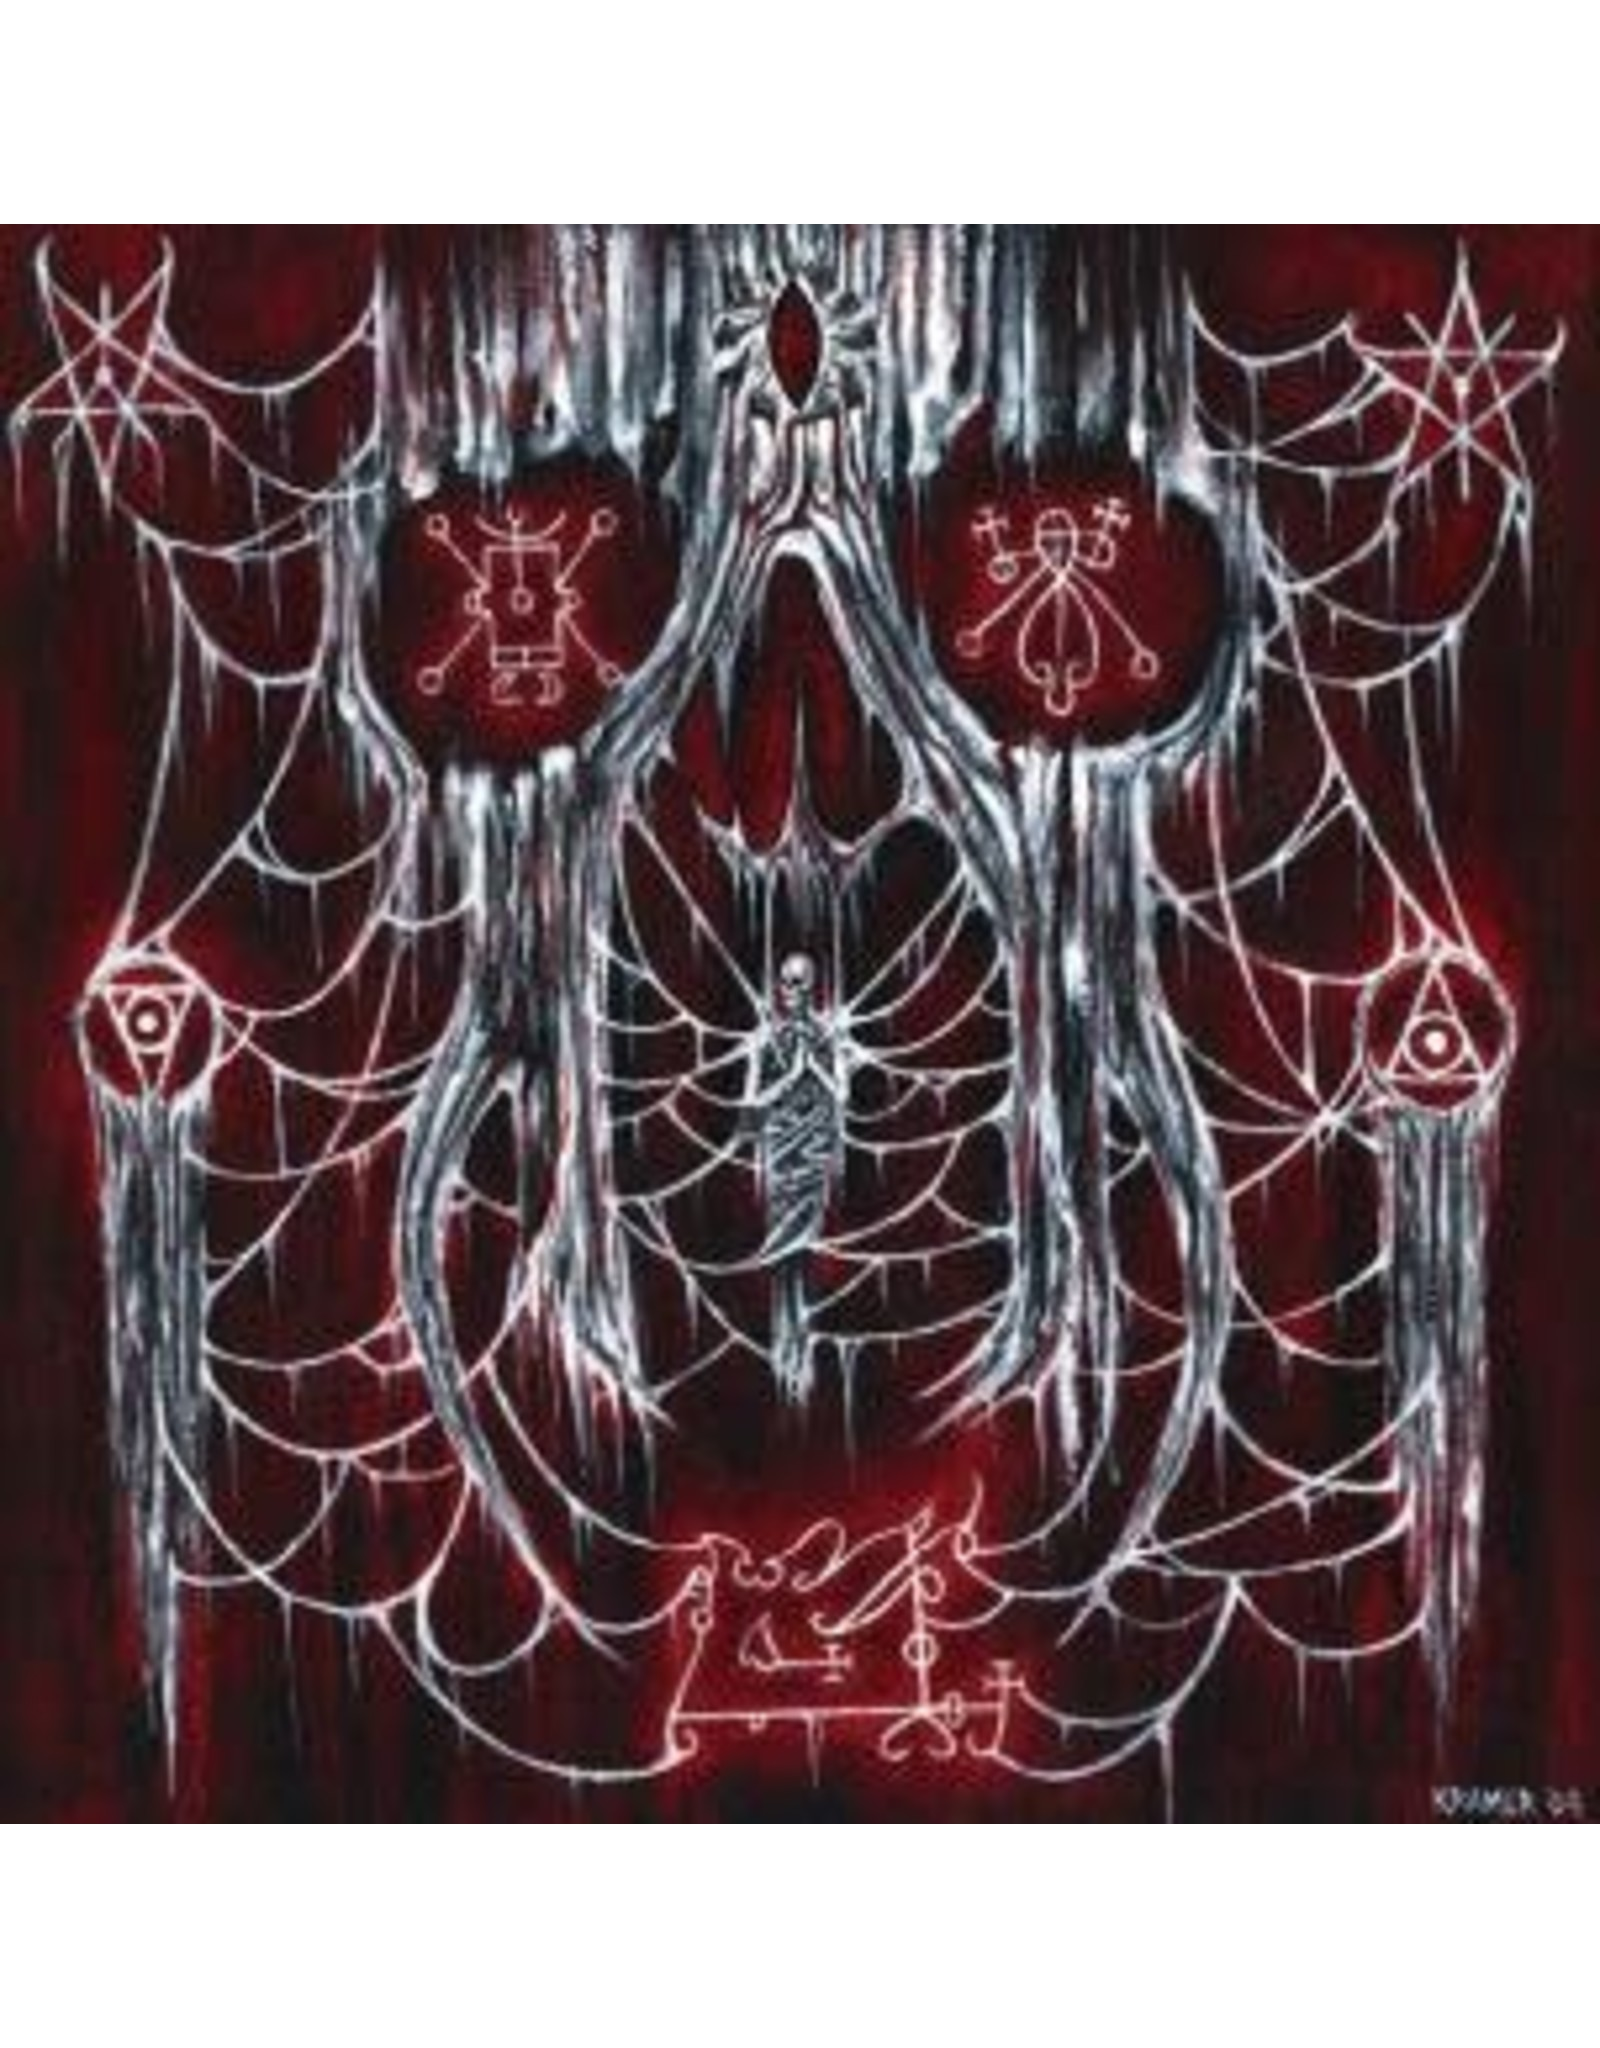 20 Buck Spin Vasaeleth: Cryptborn And Tethered To Ruin LP